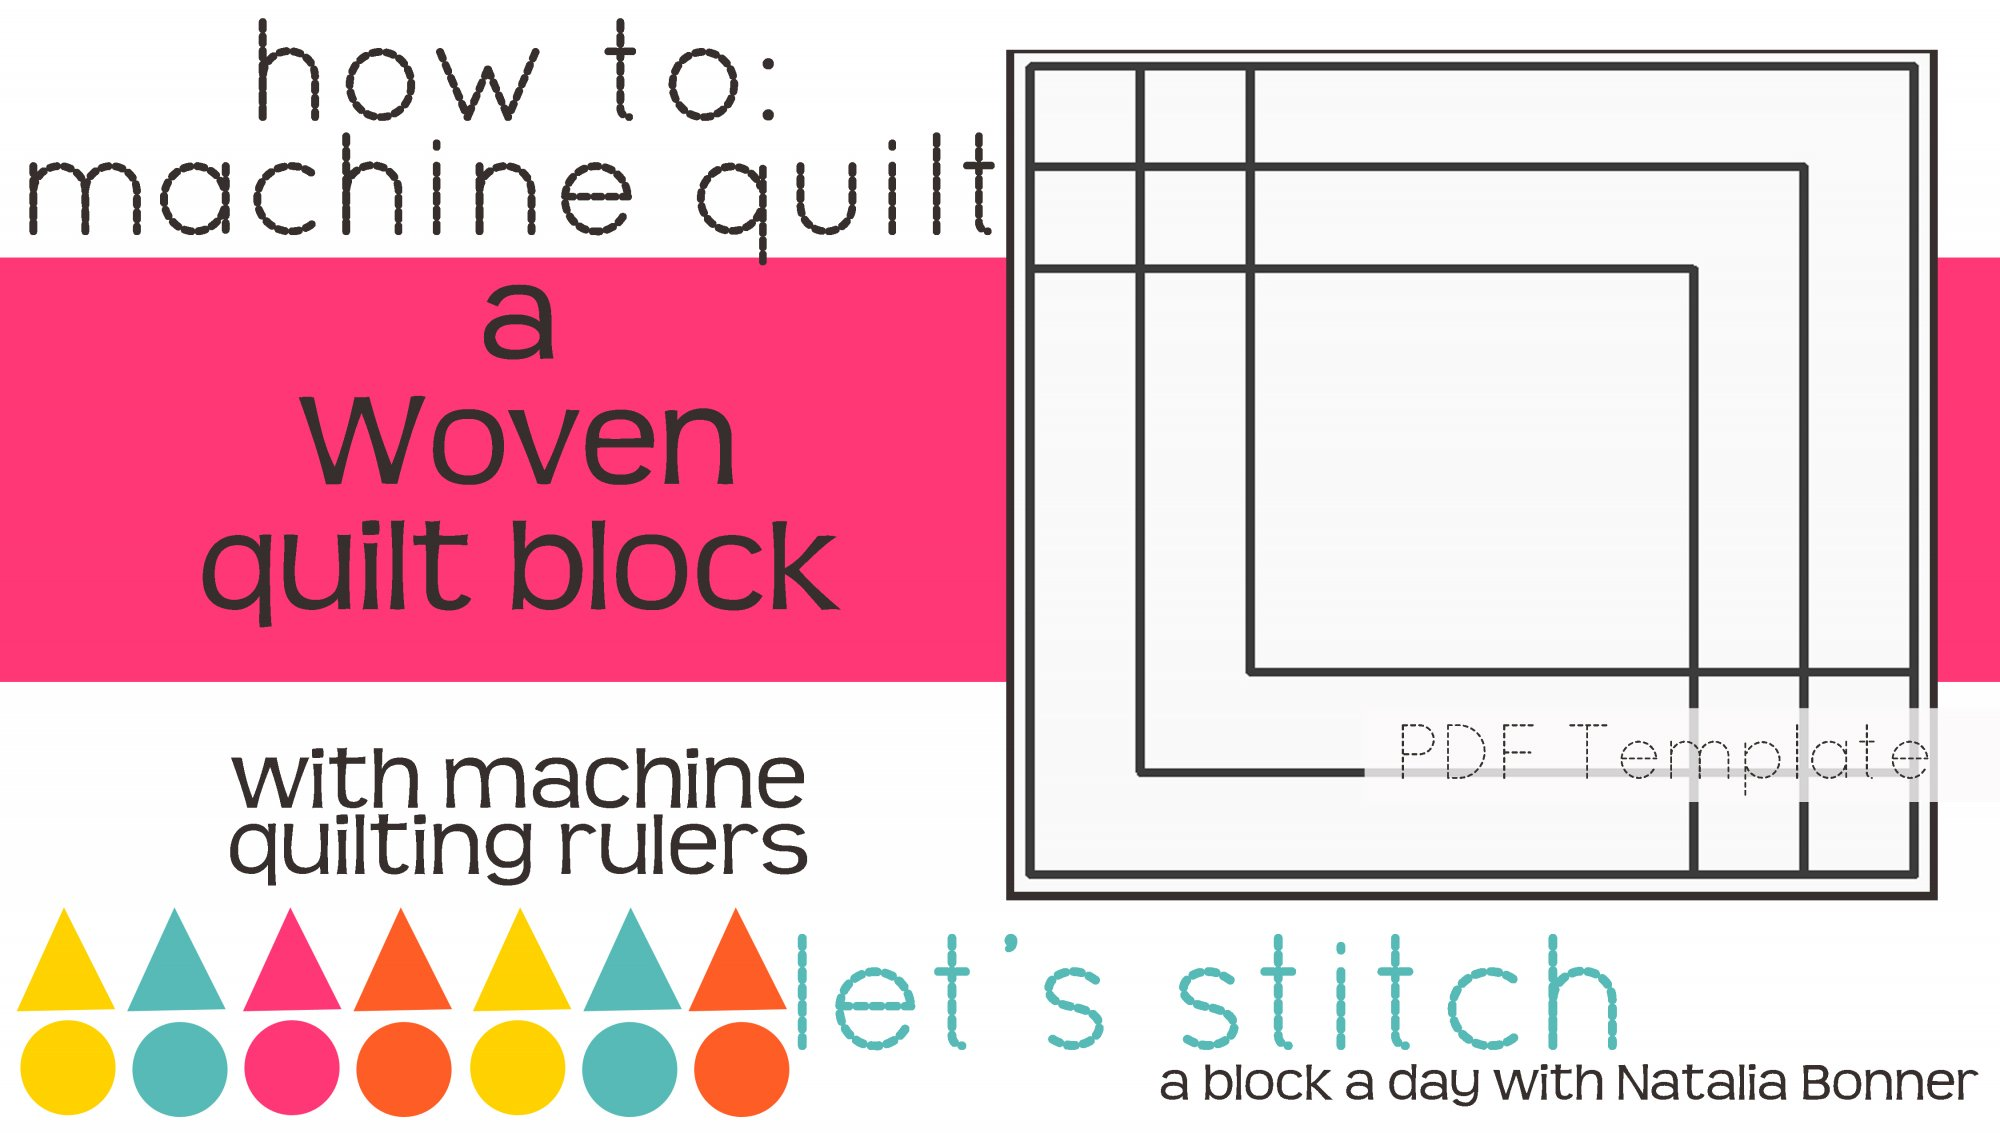 Let's Stitch - A Block a Day With Natalia Bonner - PDF - Woven